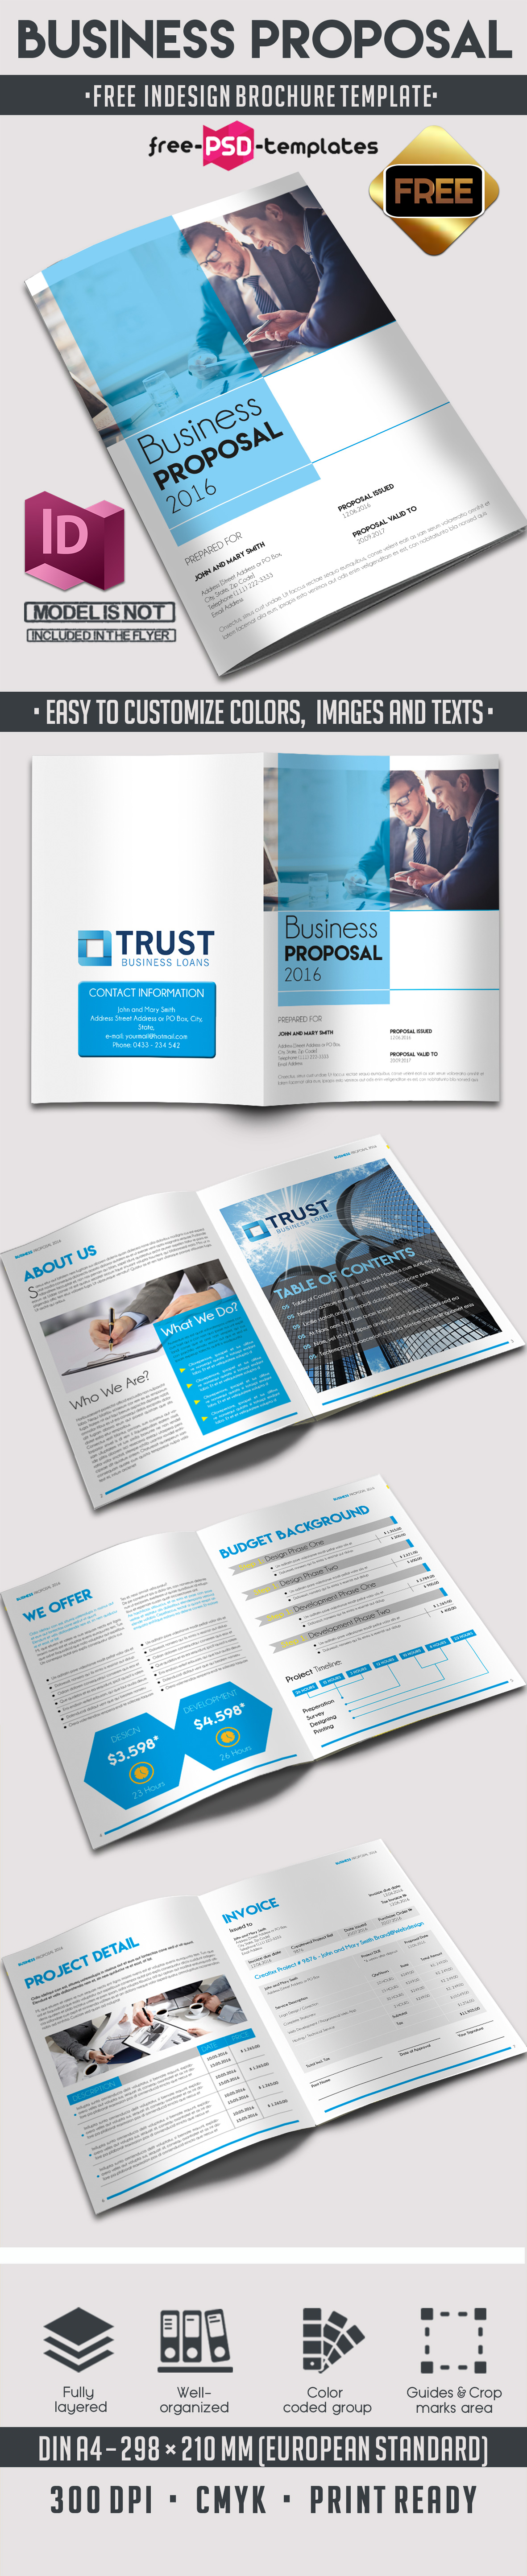 brochure templates for pages - free business proposal brochure 8 pages a4 free psd